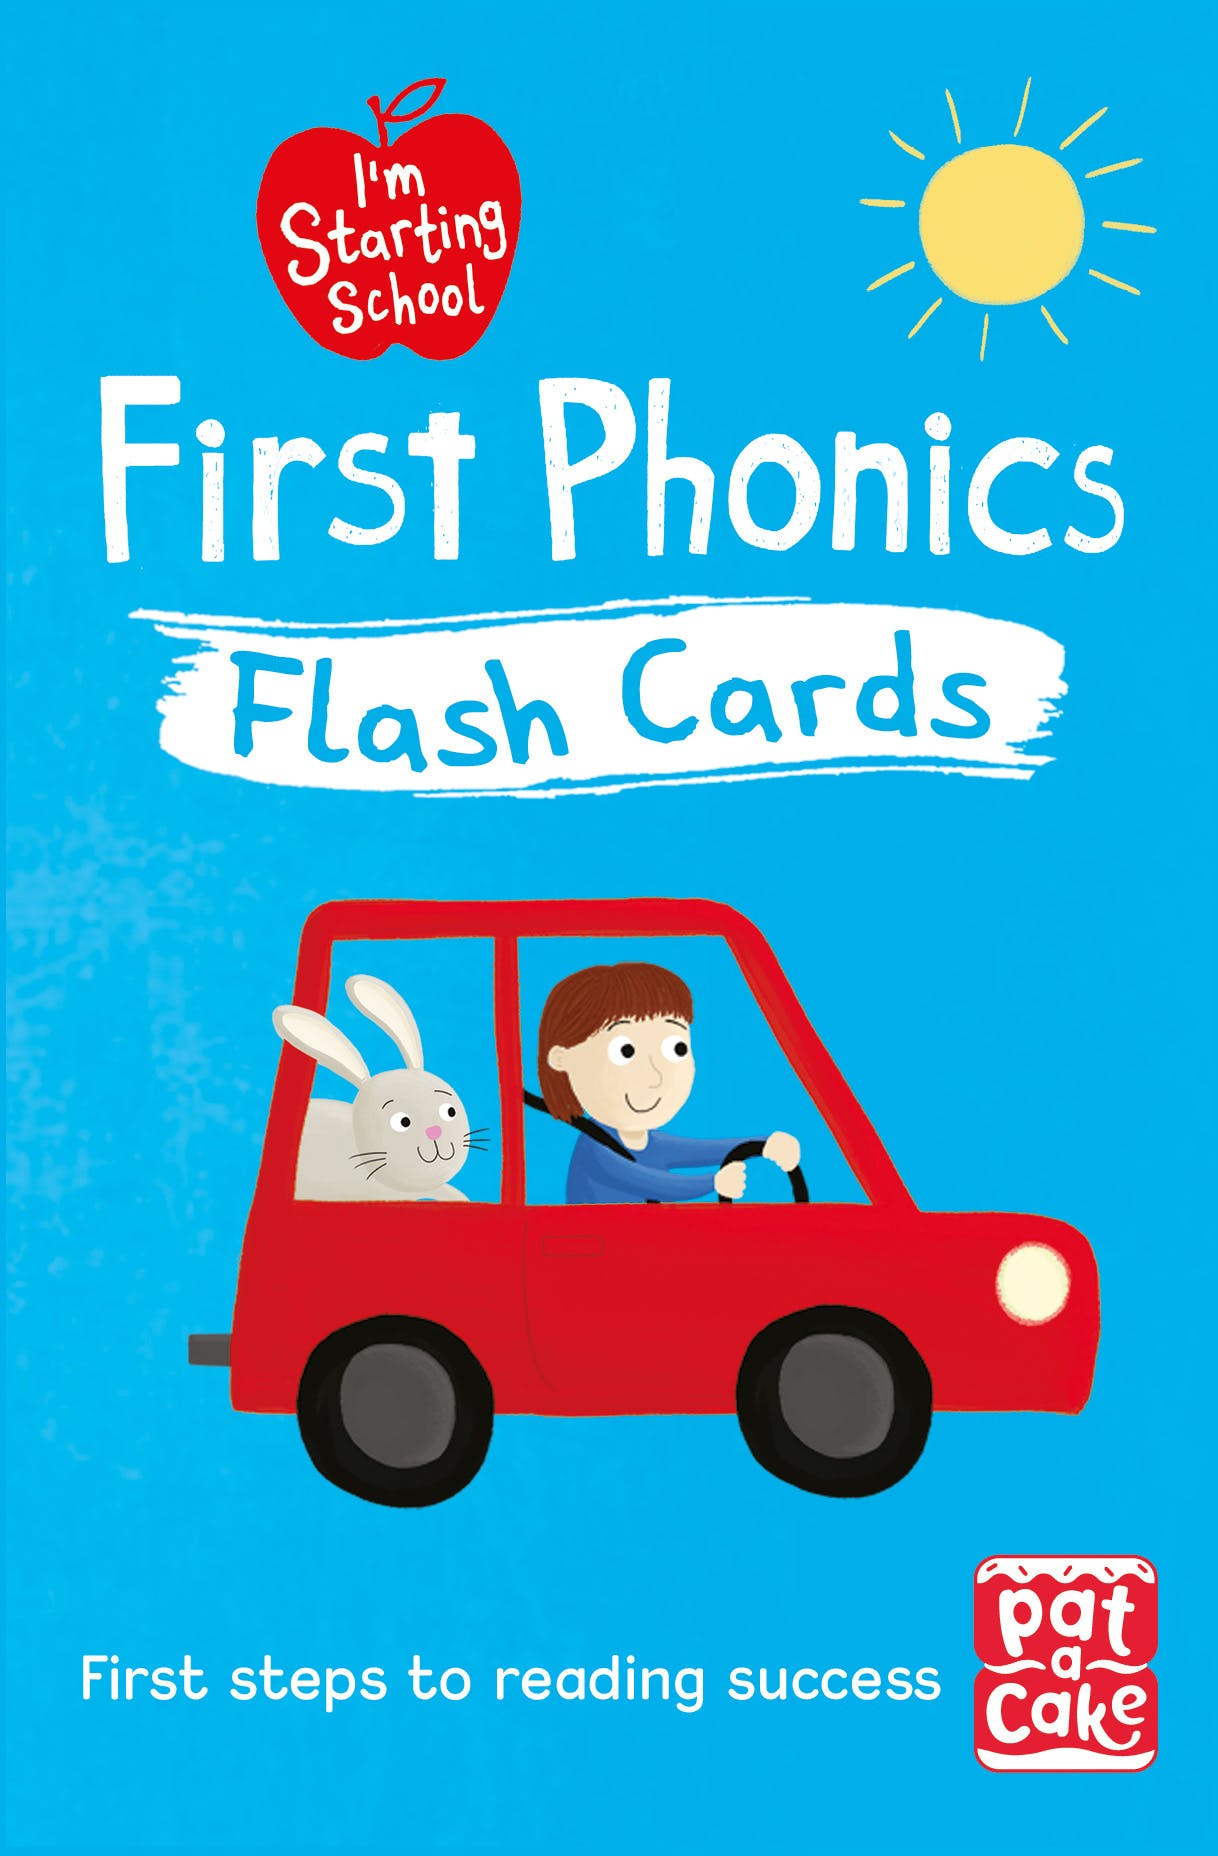 I'm Starting School: First Phonics Flash Cards from Pat-a-Cake